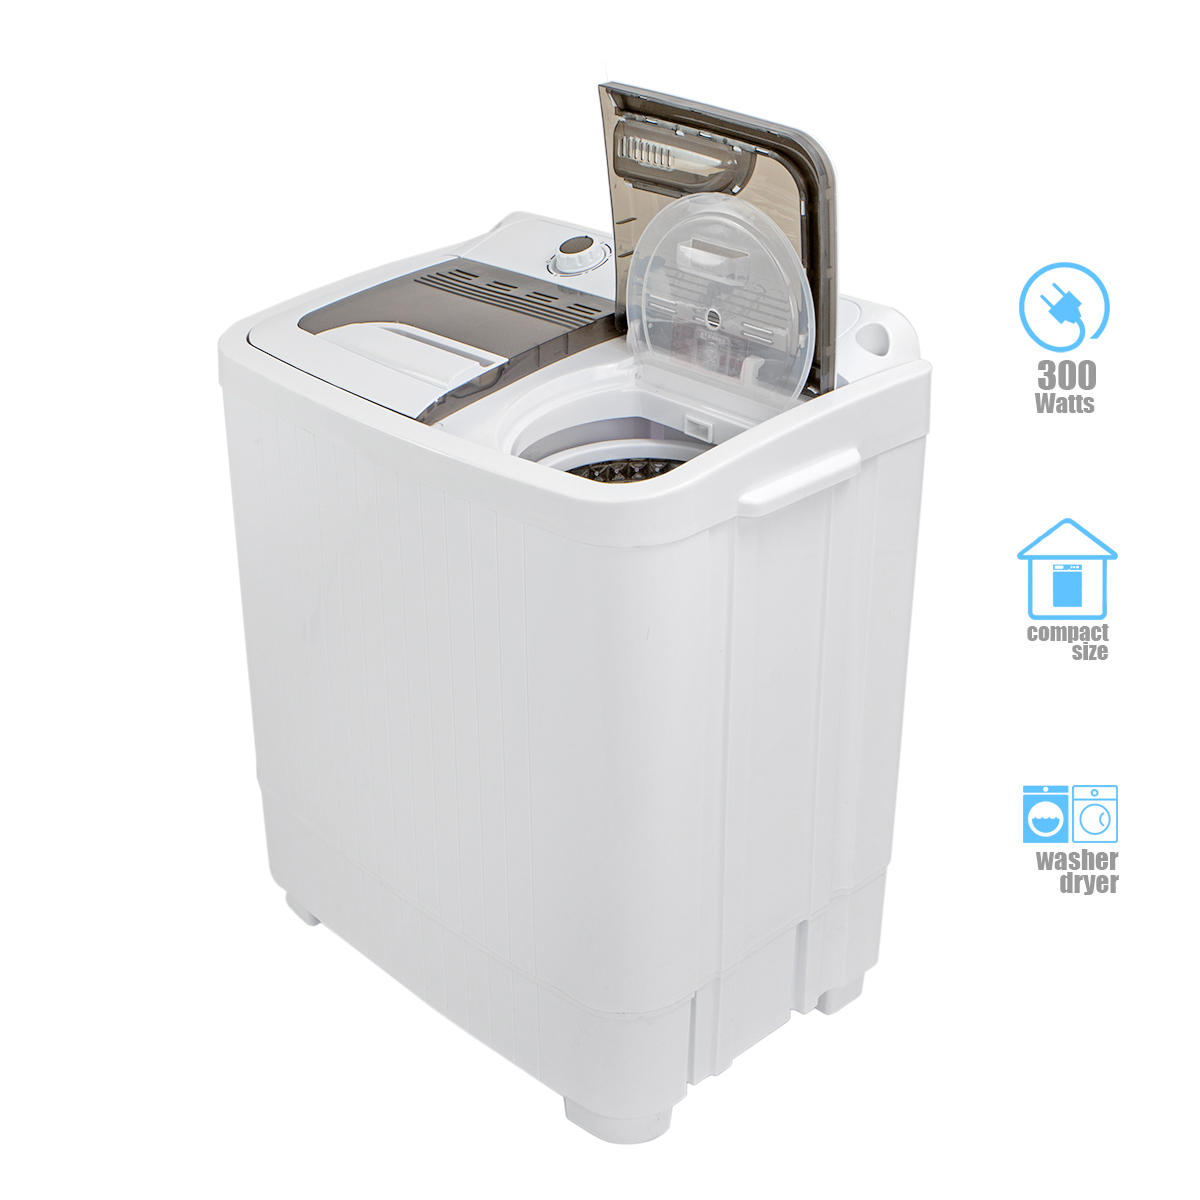 Details about Compact Portable Washer & Dryer with Mini Washing Machine and  Spin Dryer- White